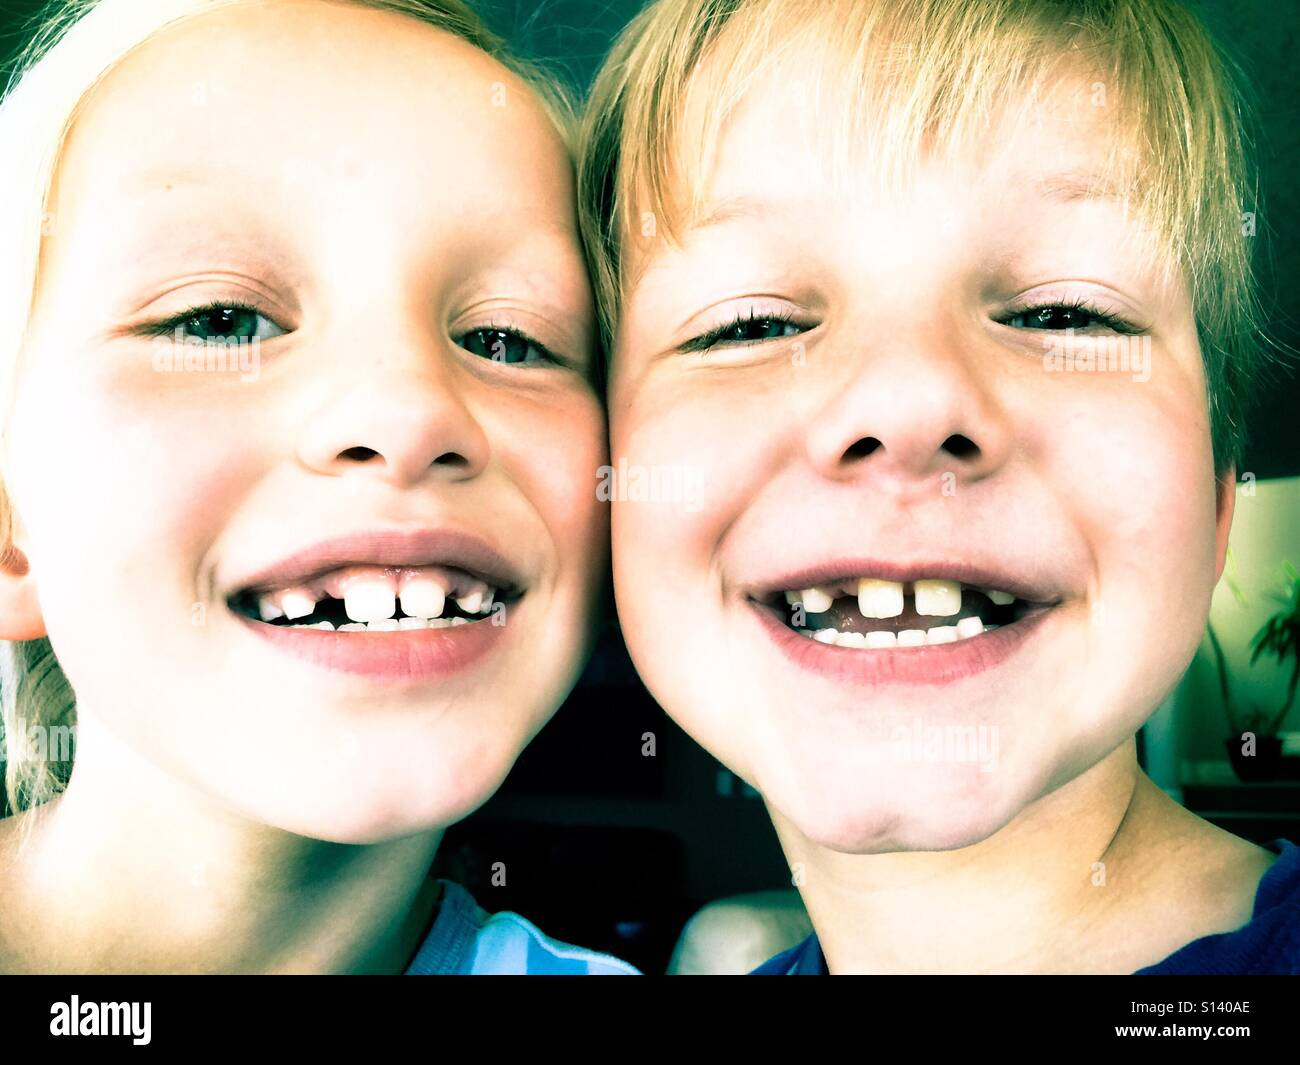 Siblings missing exactly the same baby teeth. Stock Photo